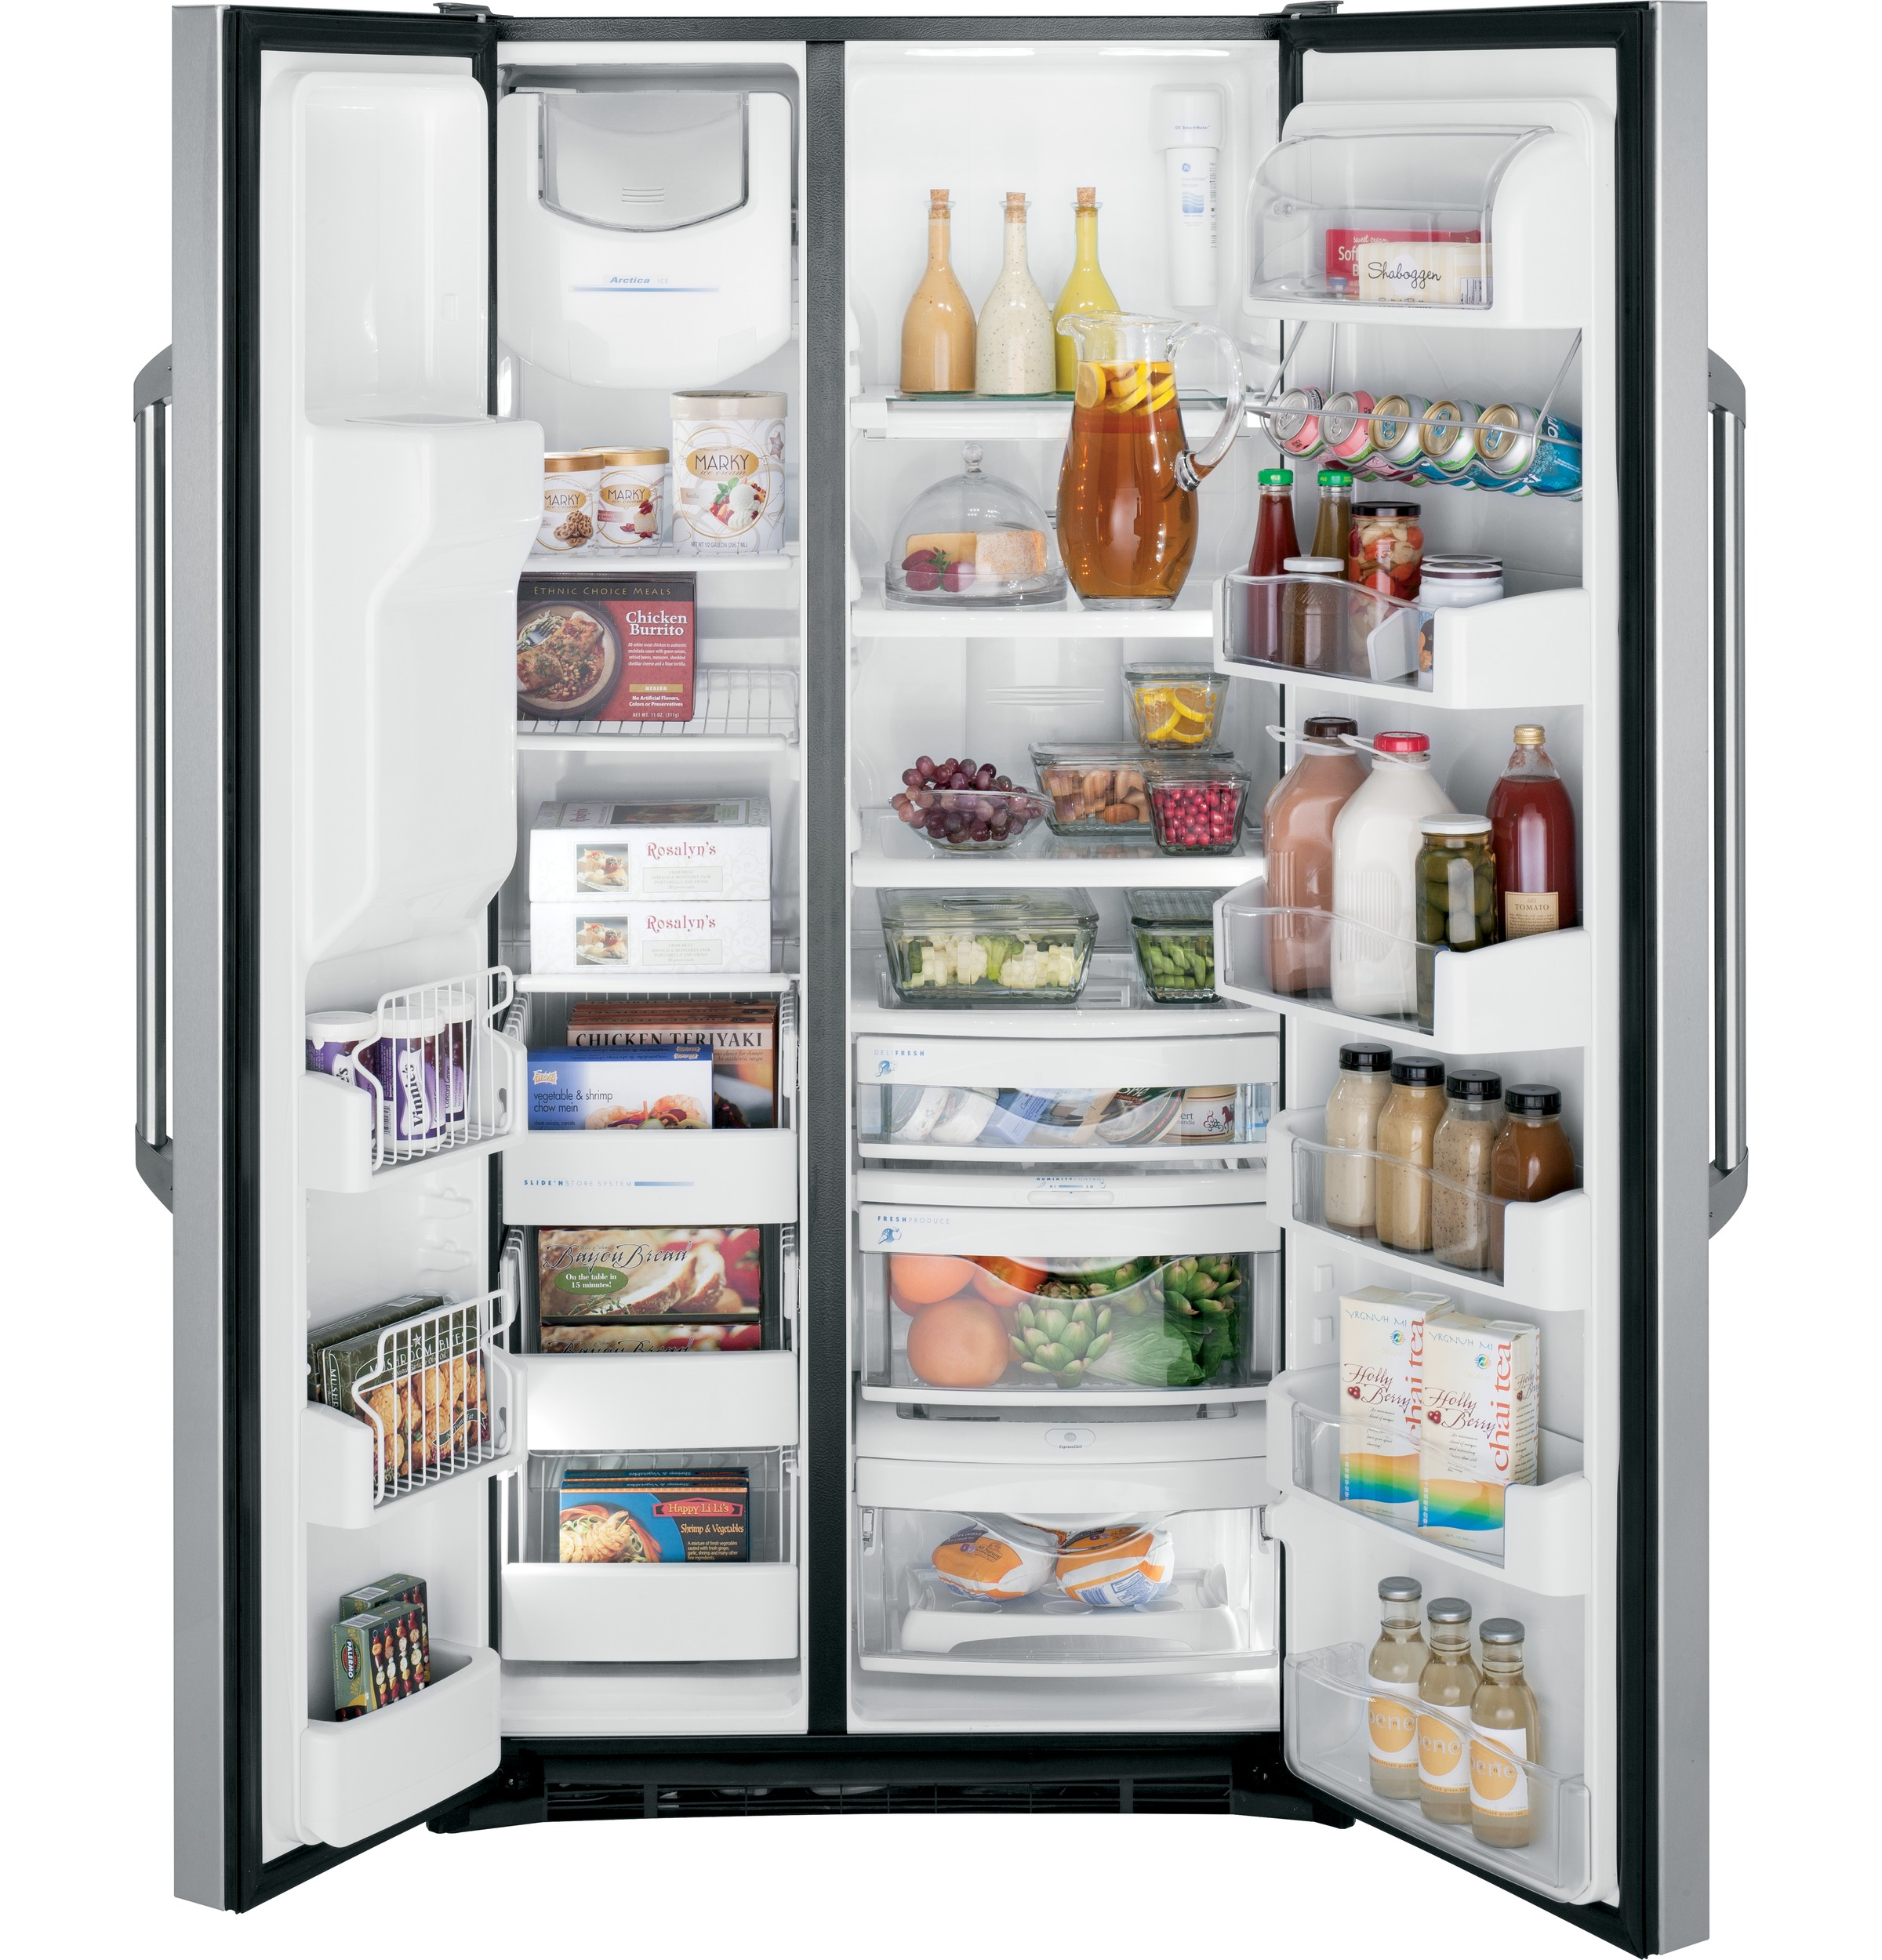 Ge Caf Series 246 Cu Ft Counter Depth Side By Refrigerator Had A Guy Ask Me To Look At The Electrical On His Sidebyside Product Image